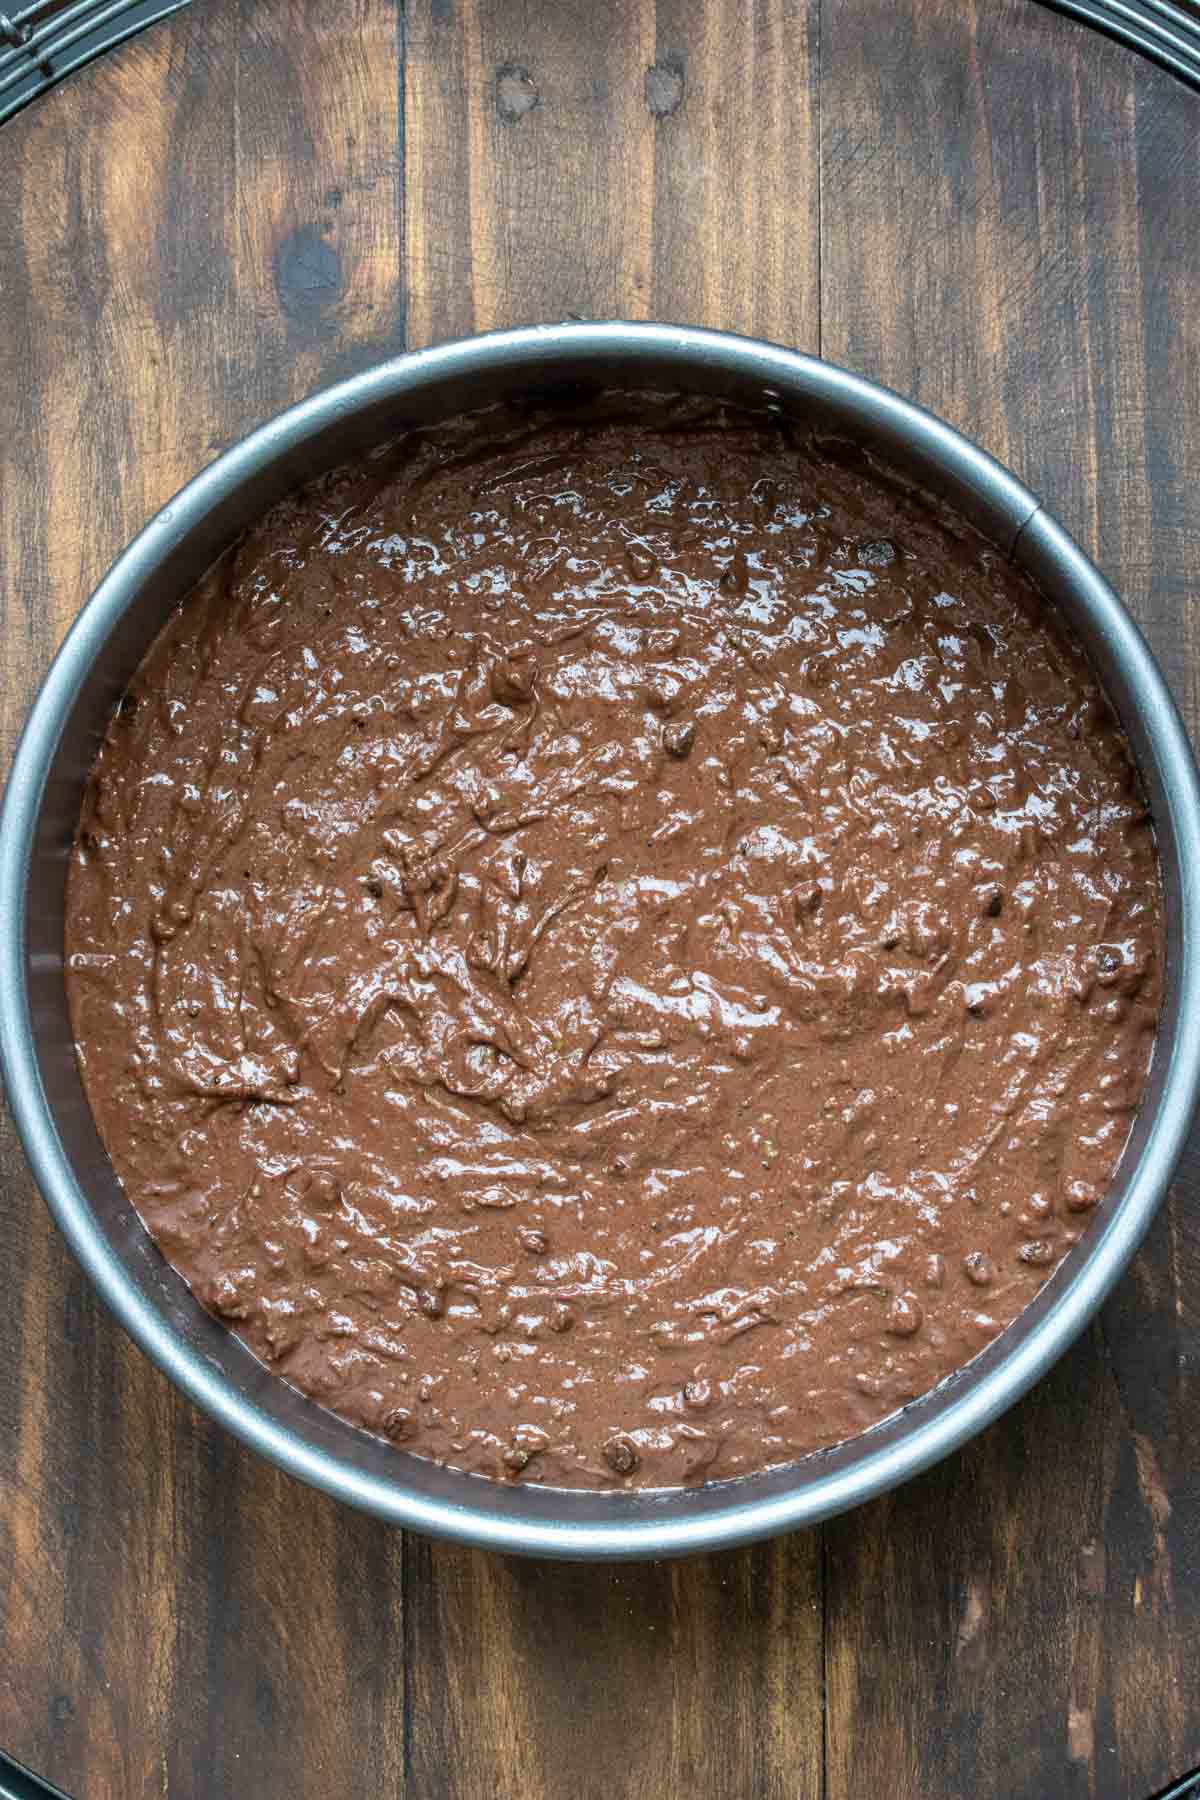 Raw chocolate cake batter in a round pan